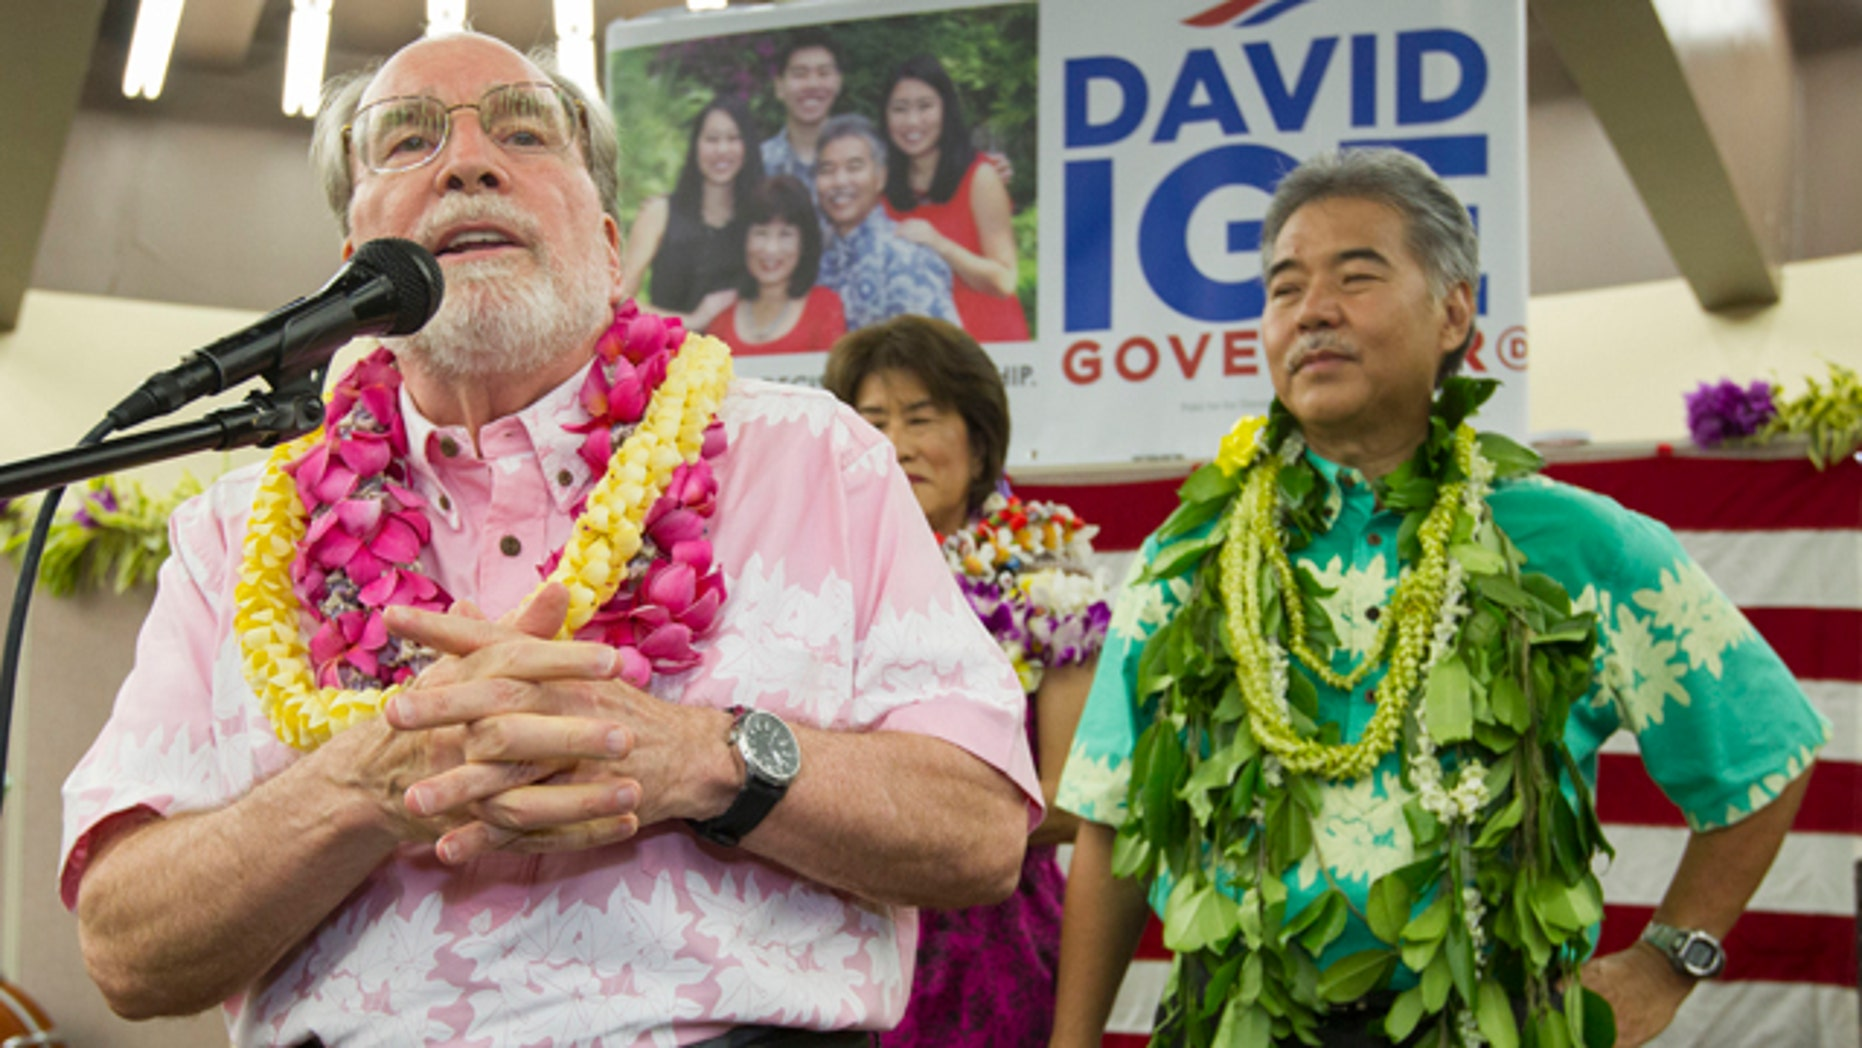 Saturday 9, 2014: Hawaii Governor Neil Abercrombie, left, addresses the supporters of Hawaii State Sen. David Ige as Ige, right, looks on. Ige defeated Abercrombie in the state's primary election to win the Democratic Party's nomination. (AP Photo/Eugene Tanner)